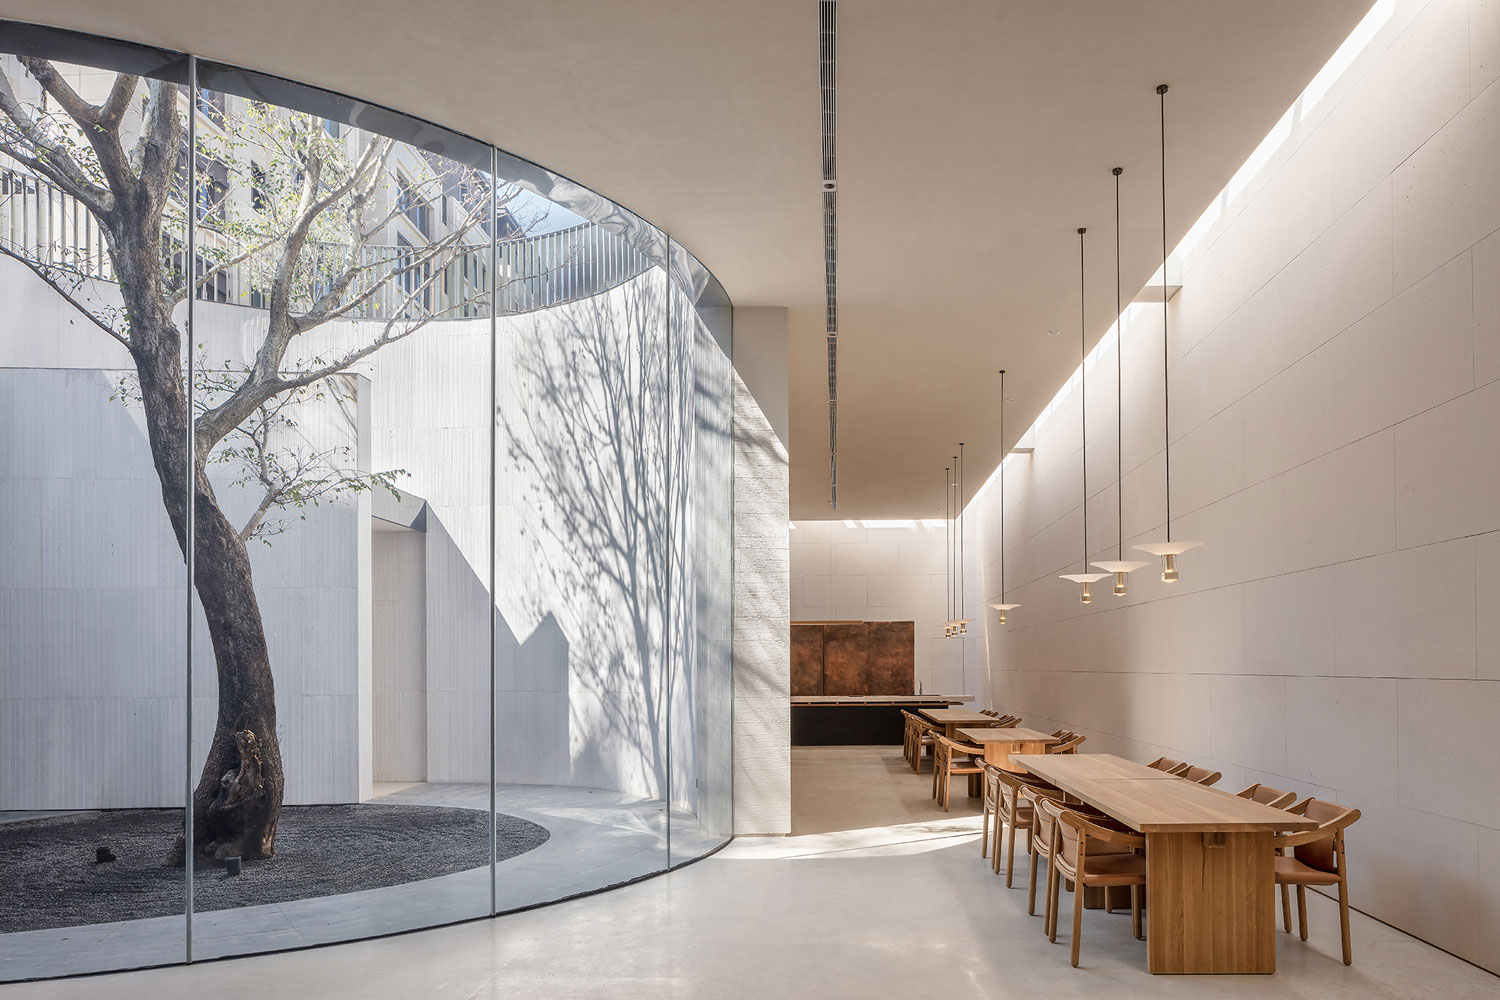 TEA Community Center in Xiamen, China by Waterfrom Design | Yellowtrace